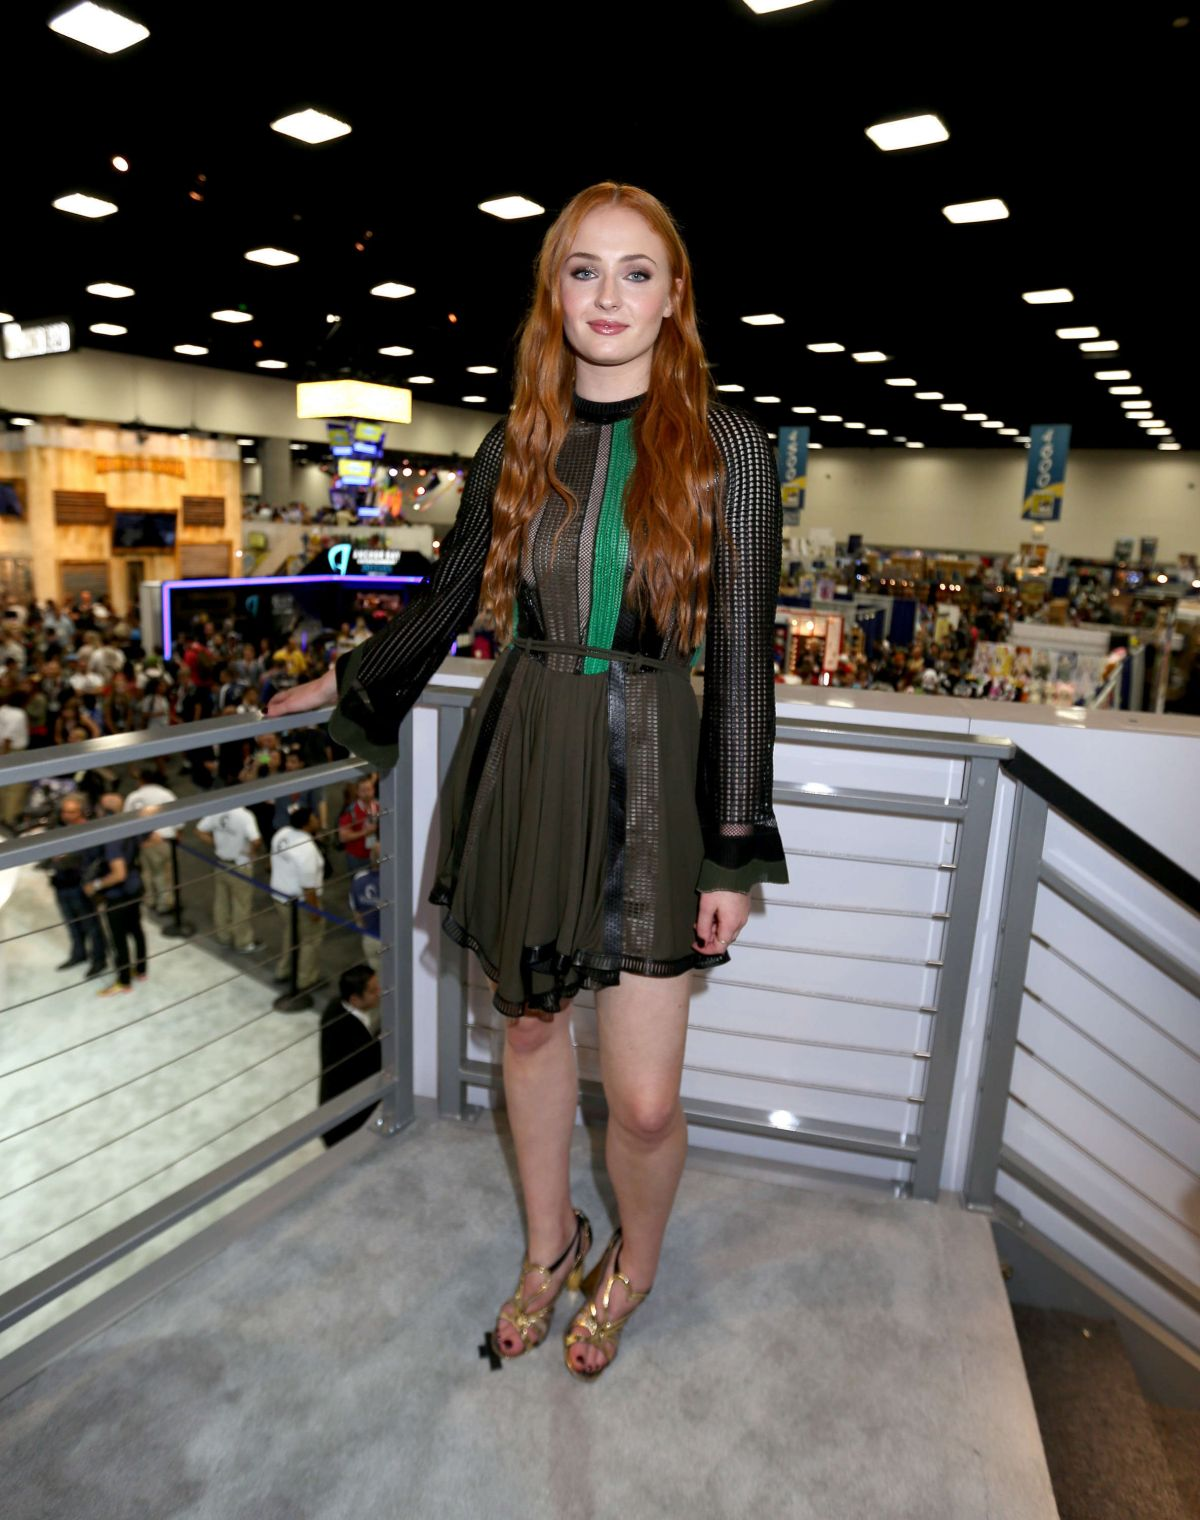 sophie-turner-at-game-of-thrones-panel-at-comic-con-in-san-diego_16